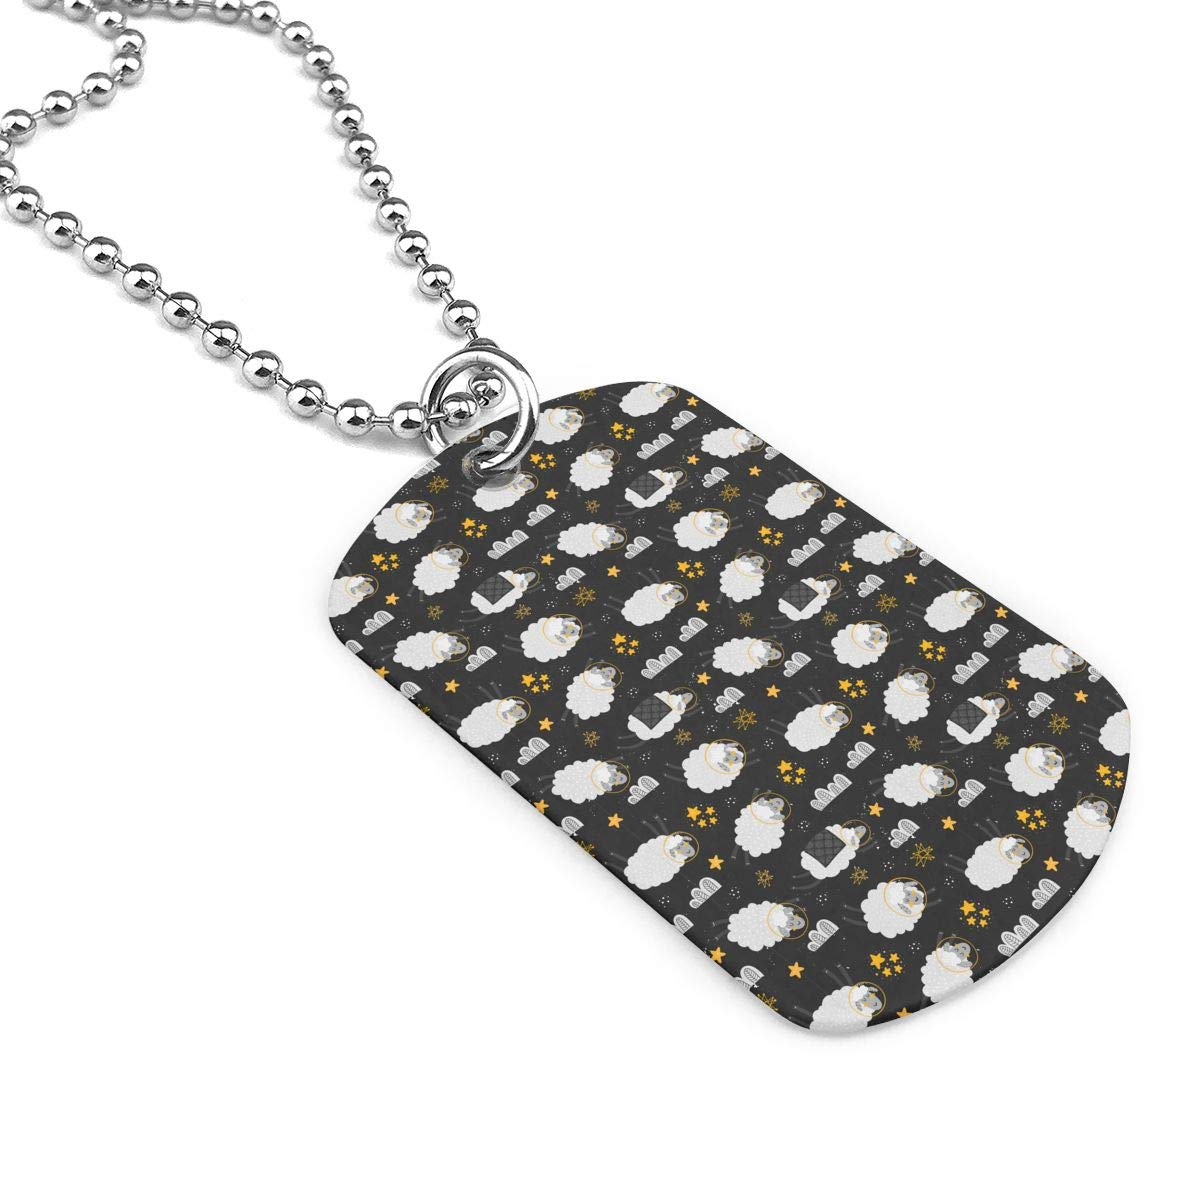 Military Necklace Heeps In The Space Custom Zinc Alloy Pendant Necklace Dog Tags